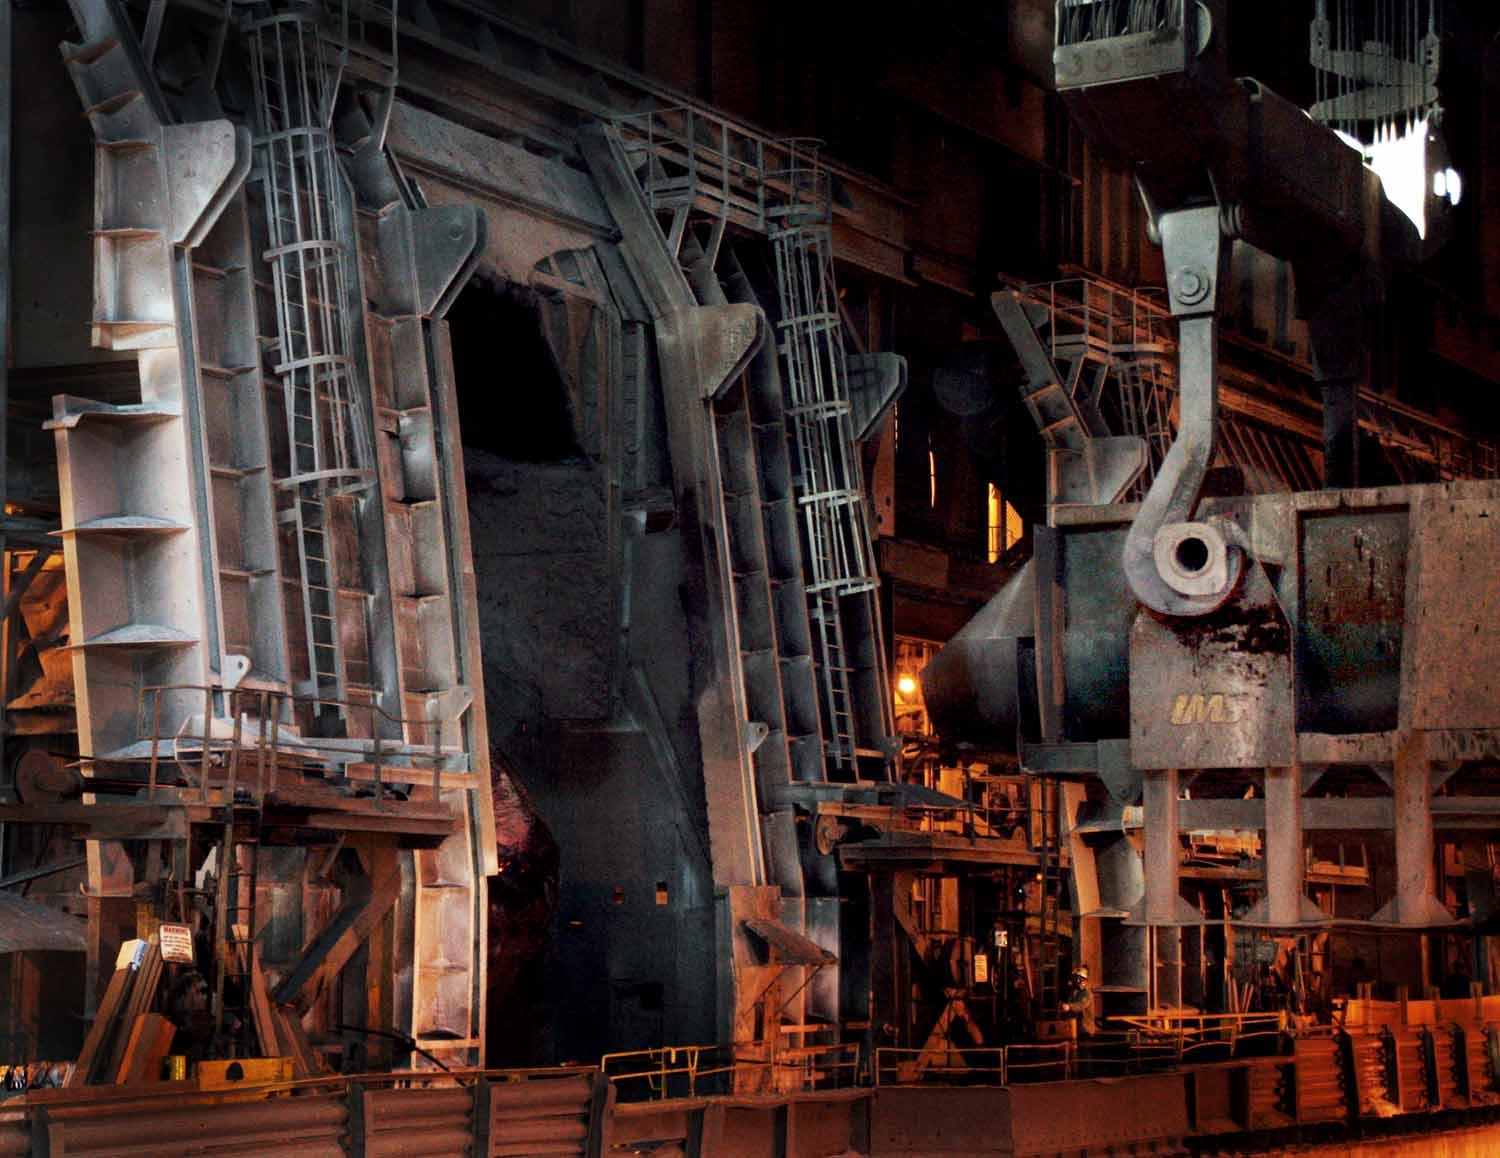 INDIANA STEEL MILL